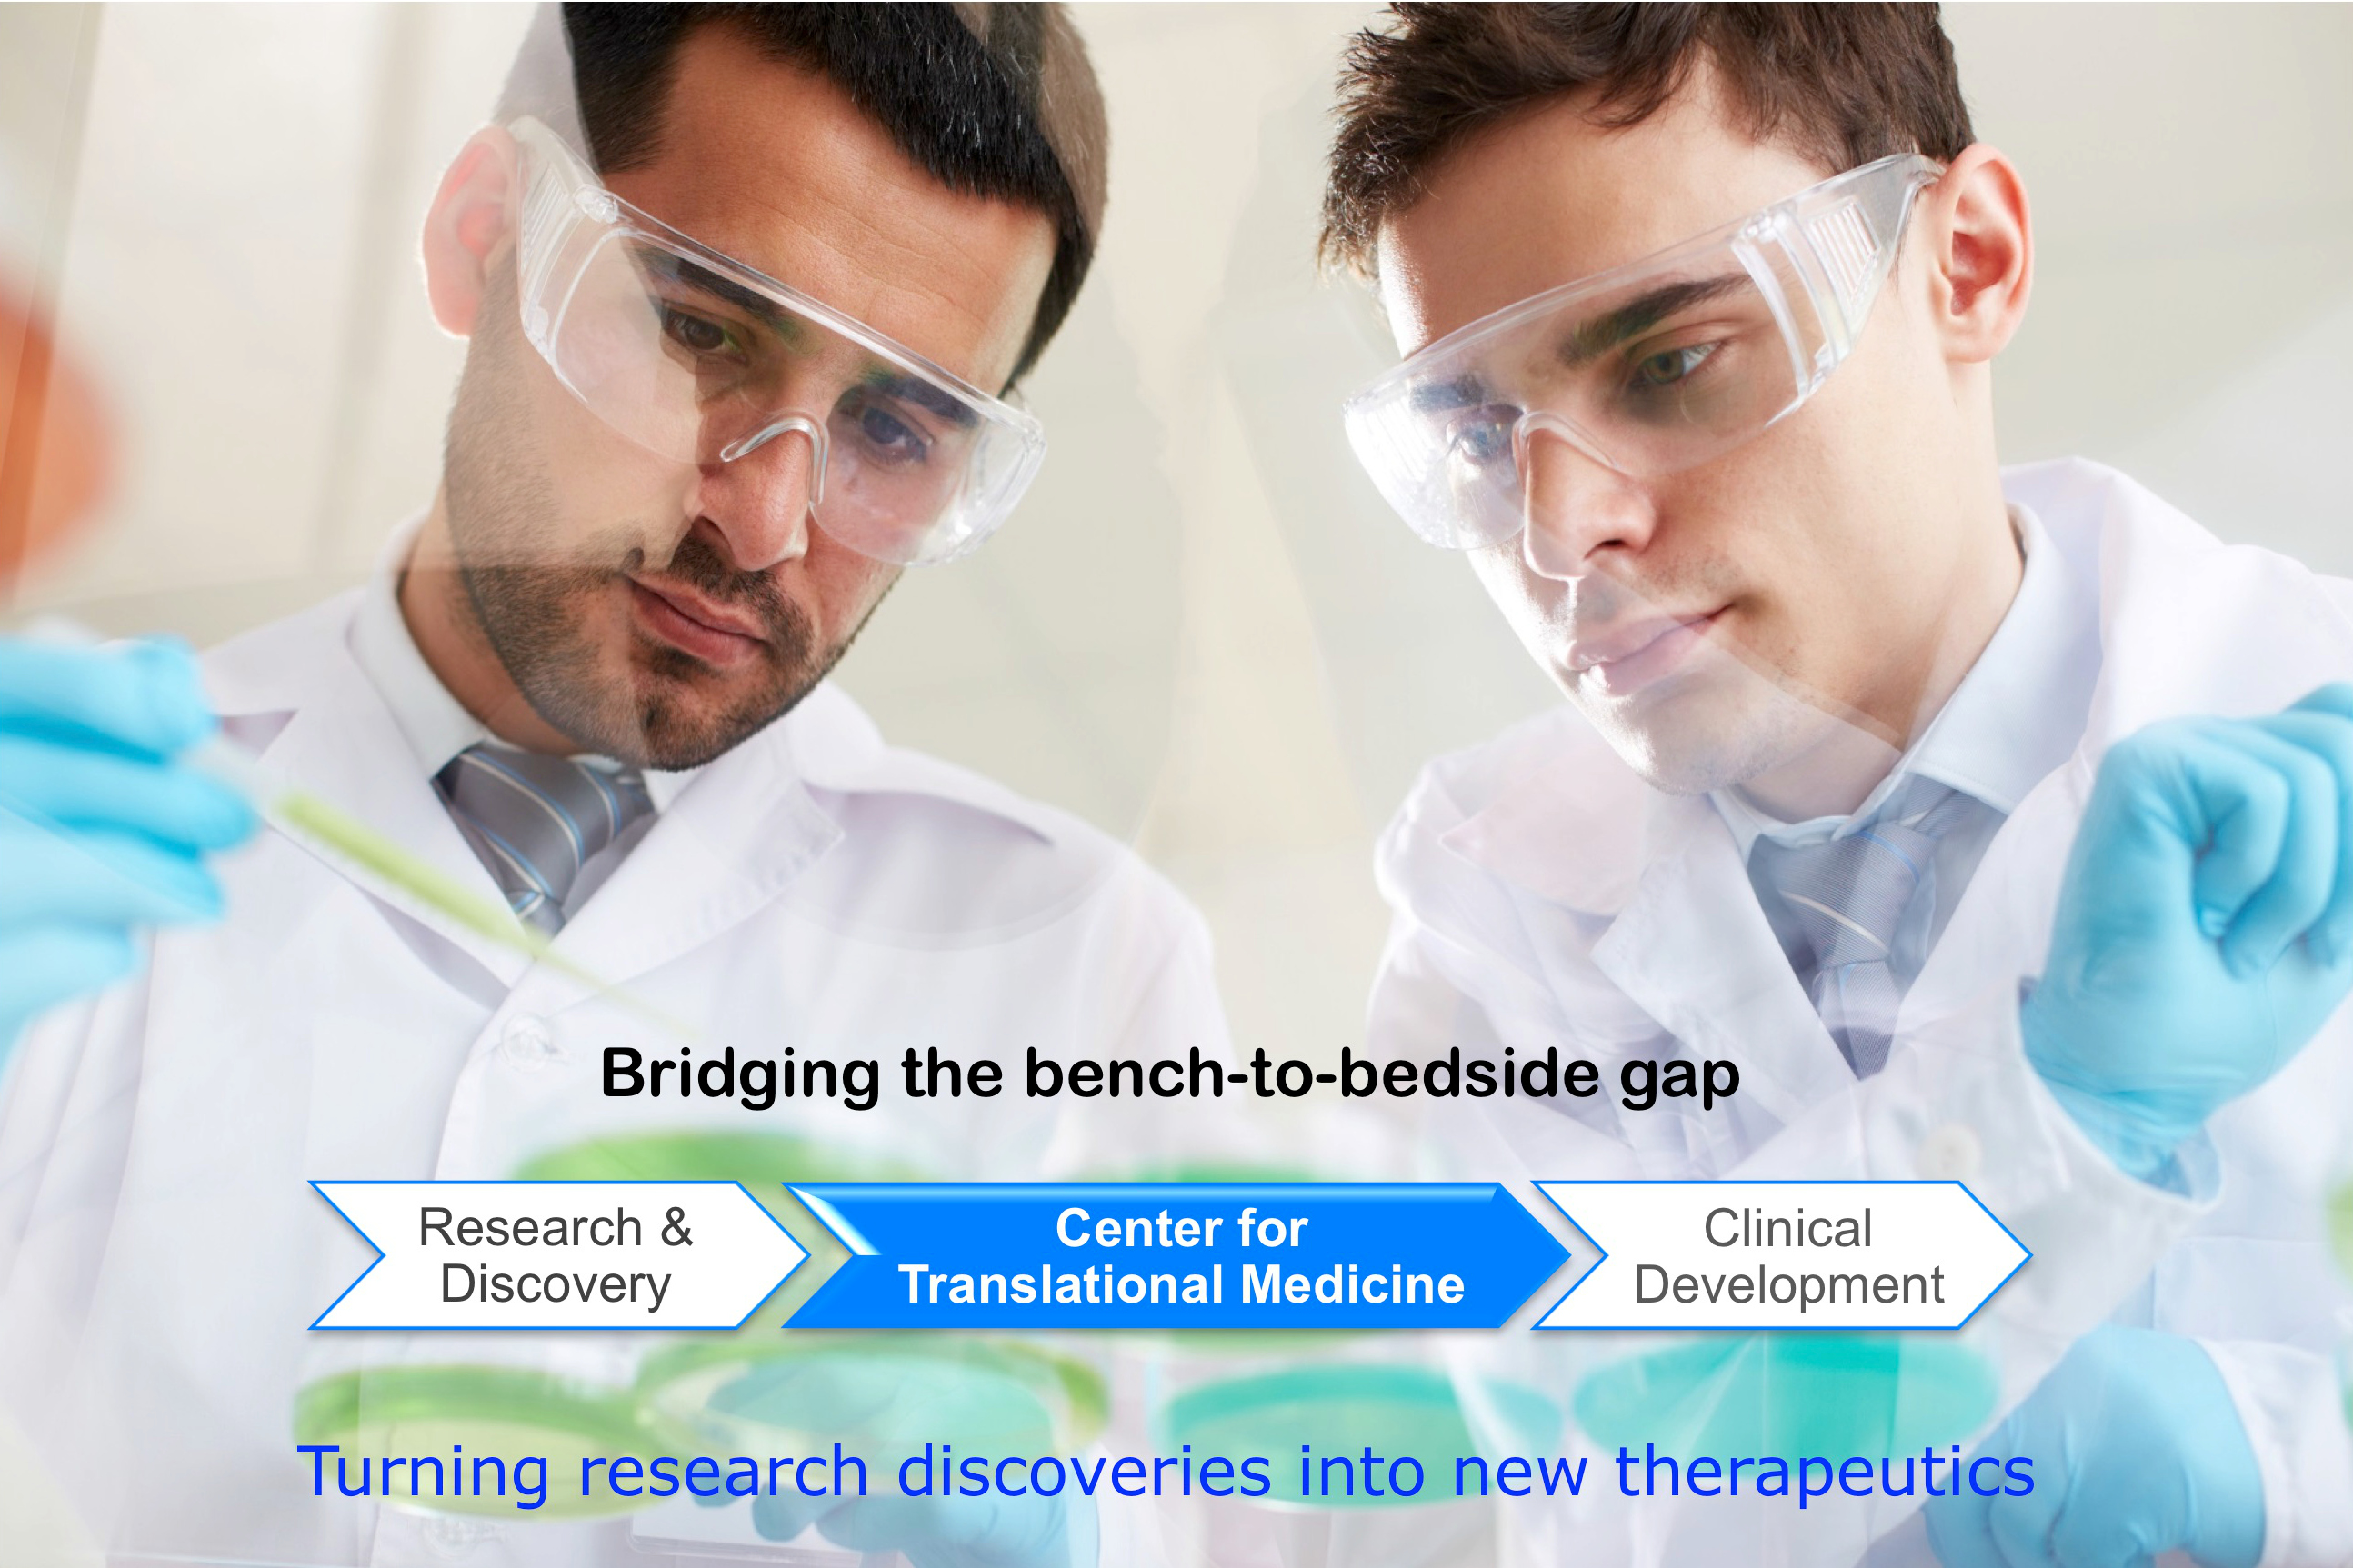 Center for Translational Medicine